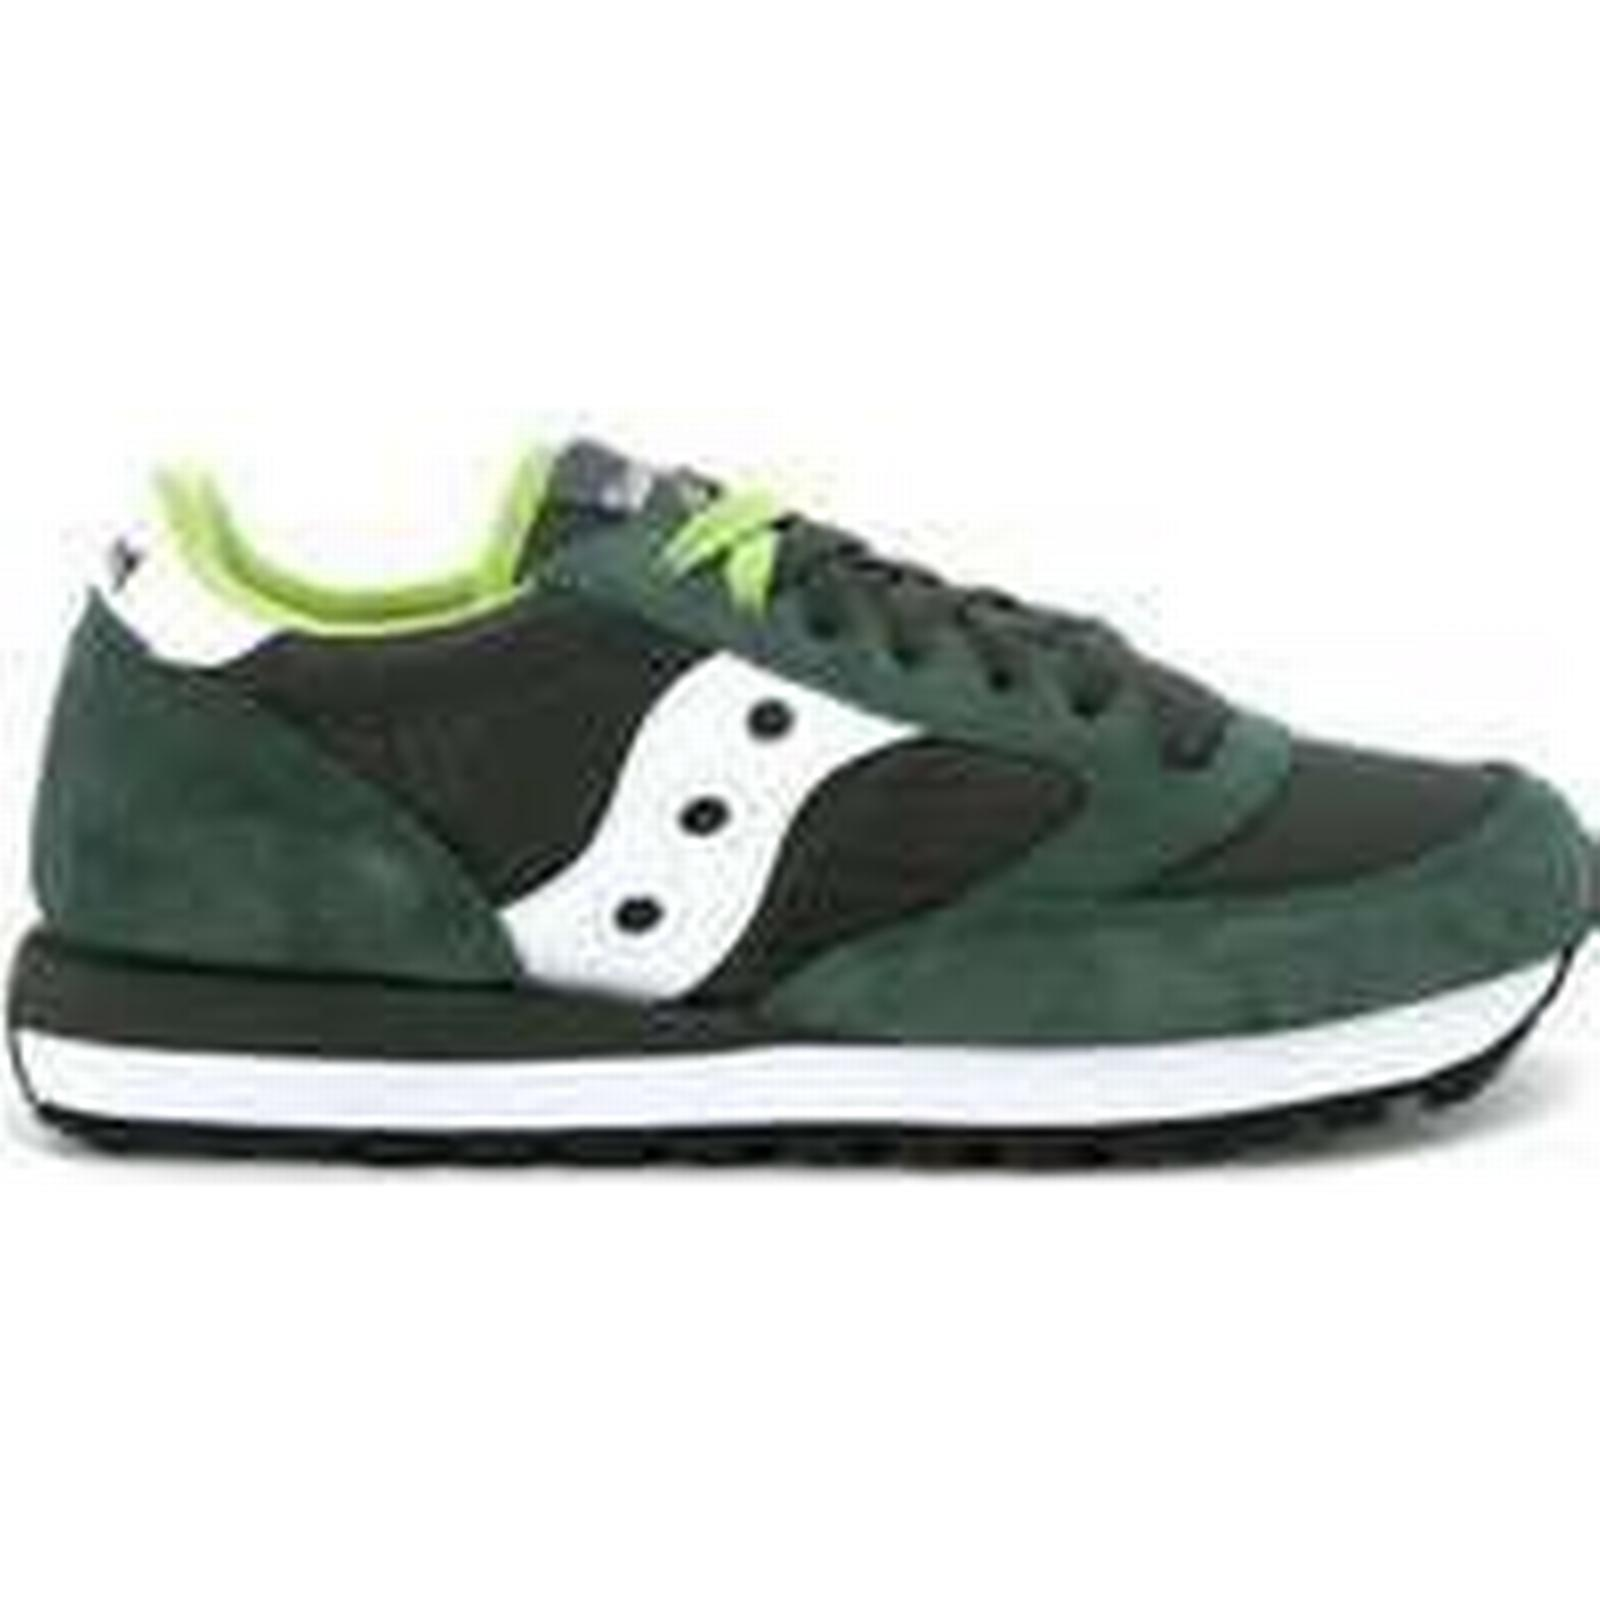 Spartoo.co.uk Saucony model Jazz dark grey suede and (Trainers) nylon sneaker men's Shoes (Trainers) and in Green 7968a8